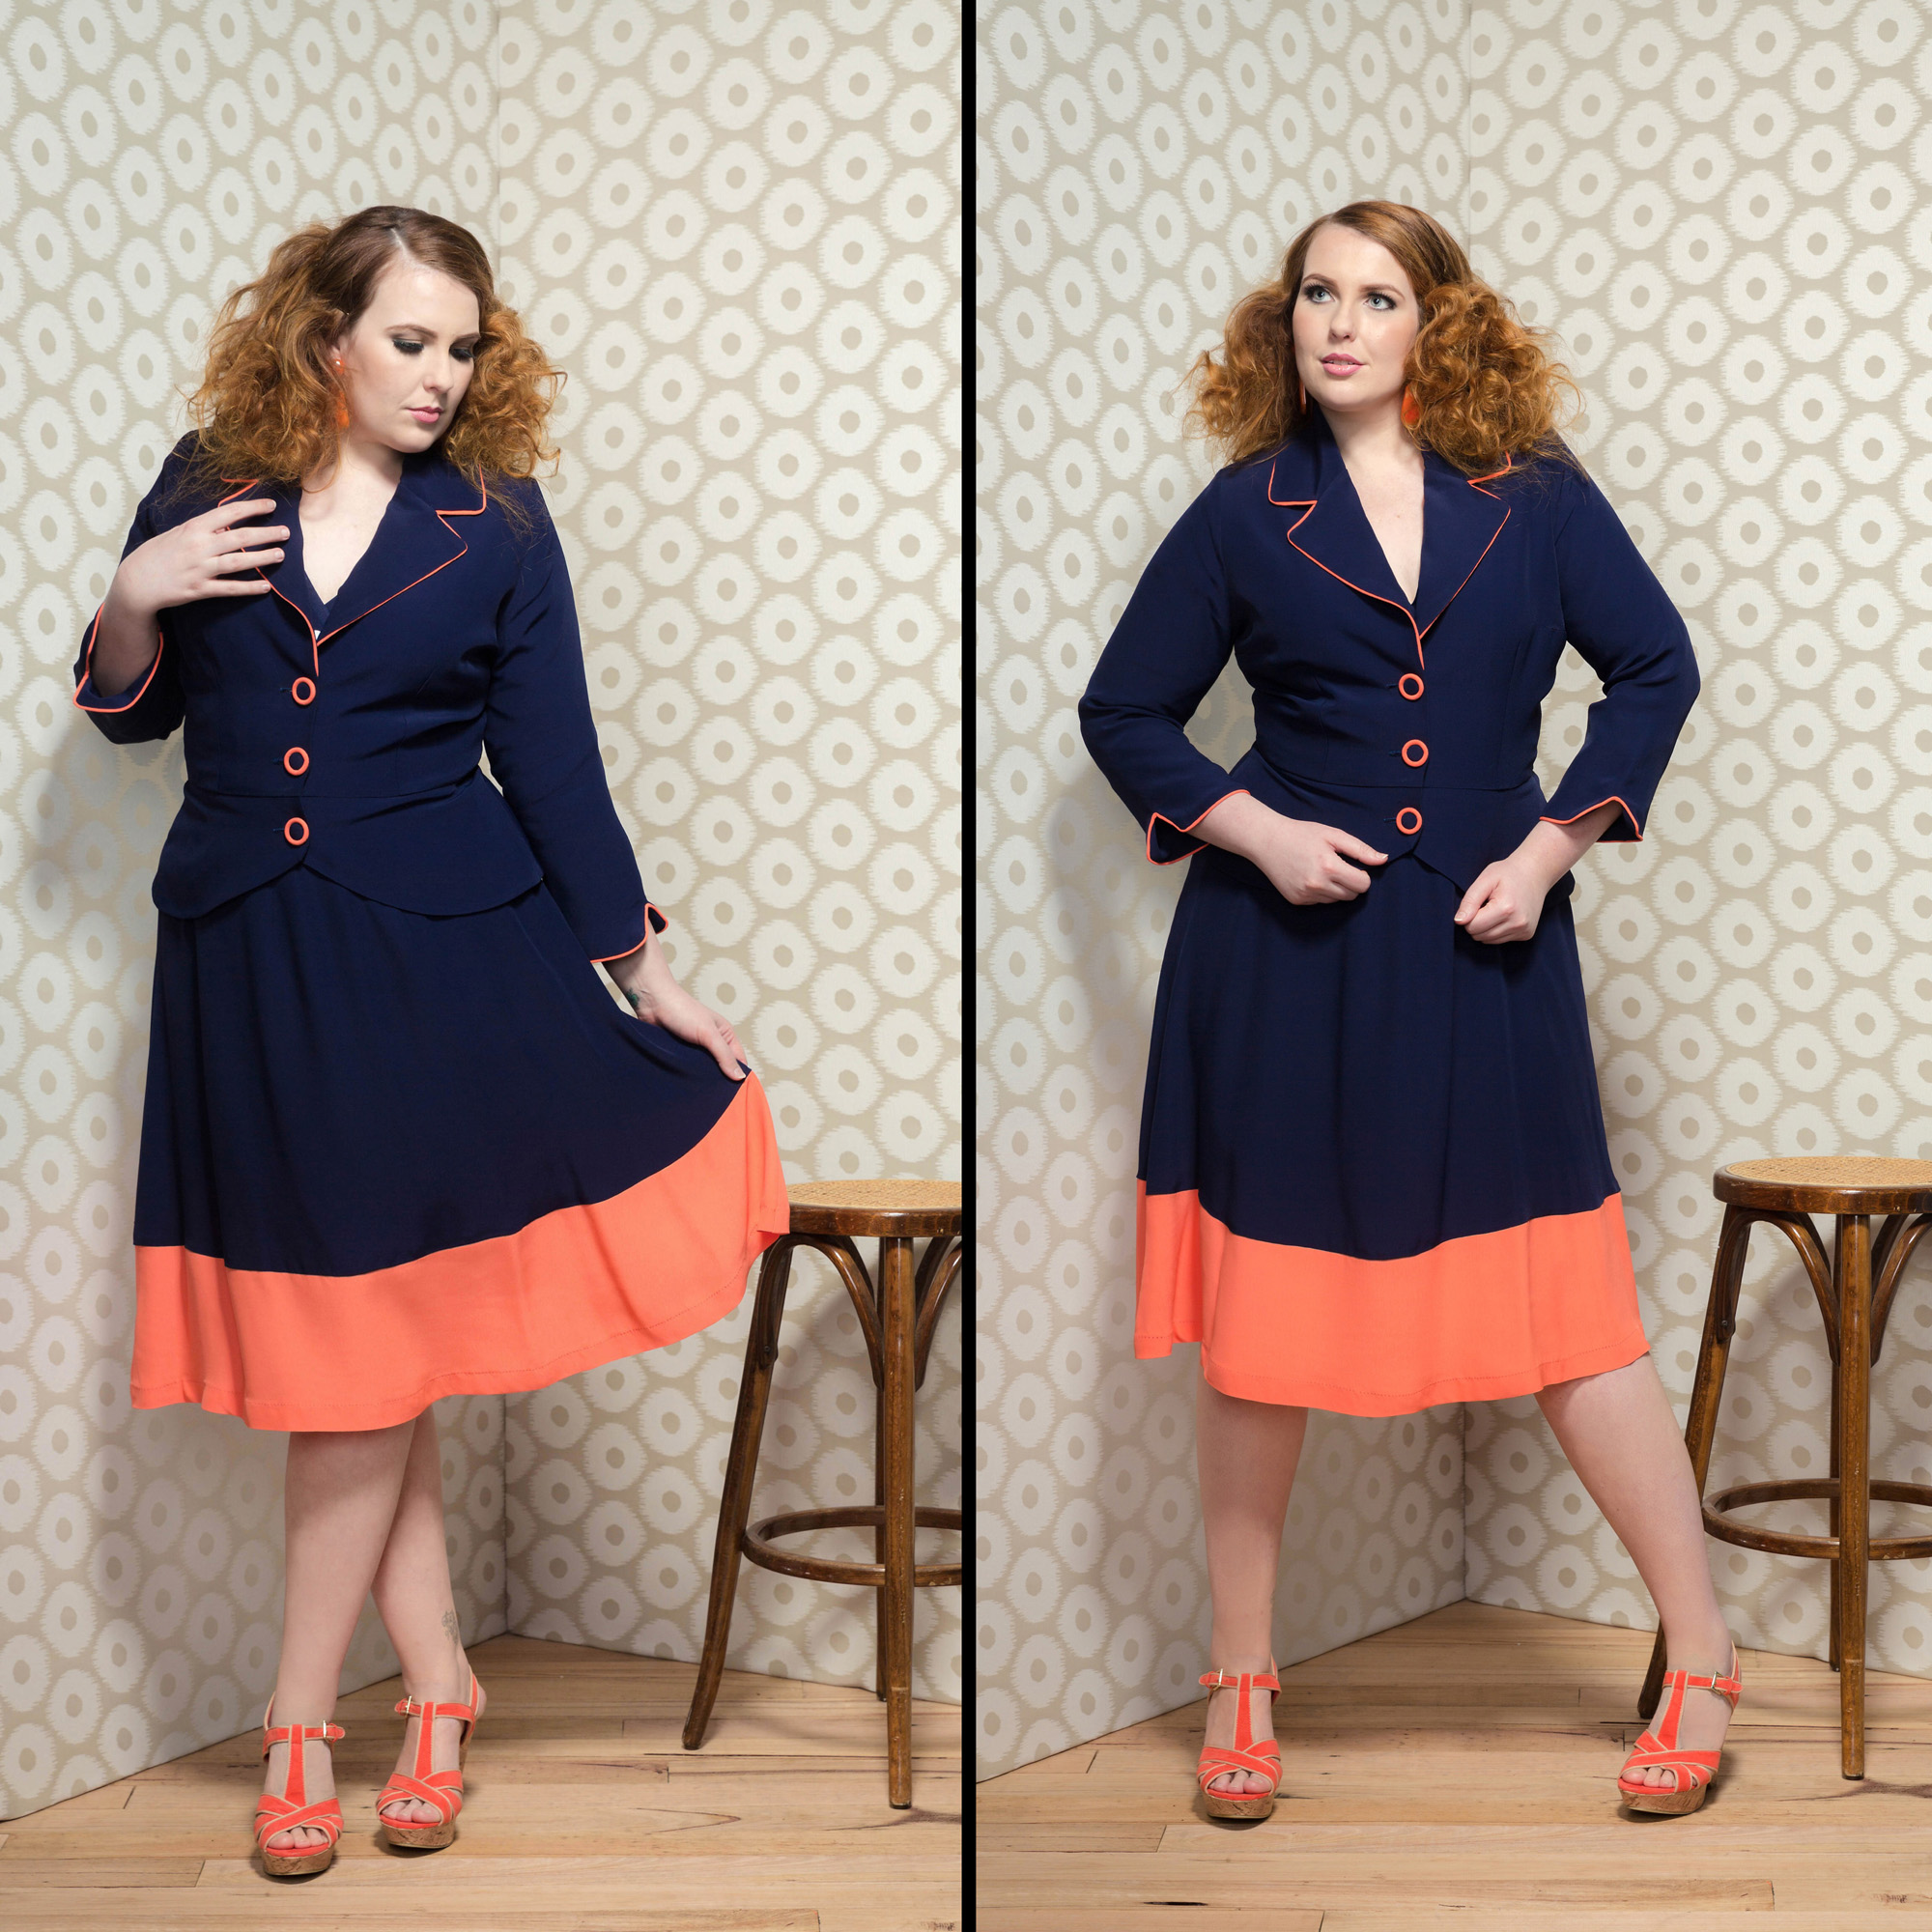 dunaway-jacket-halston-skirt-navy-melon.2000